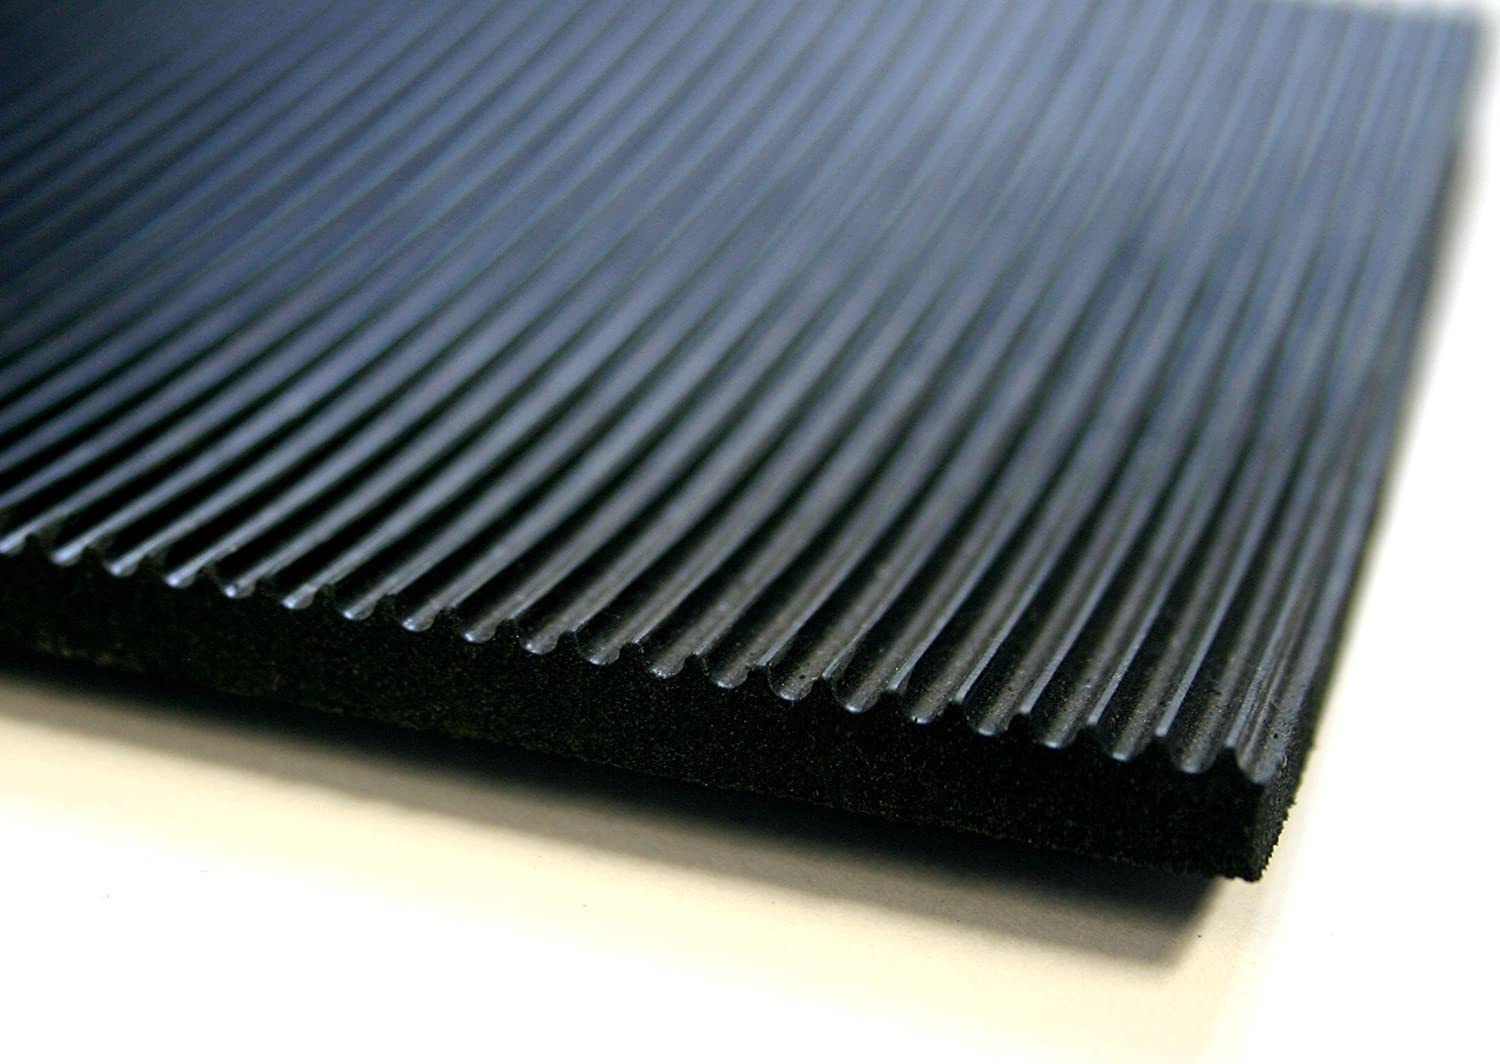 Electrical Switchboard Rubber Matting - 1m Wide x 9.5mm thick Heavy Duty - 15kV Tested Non-Slip Safety Mat (1m Length) Thorne